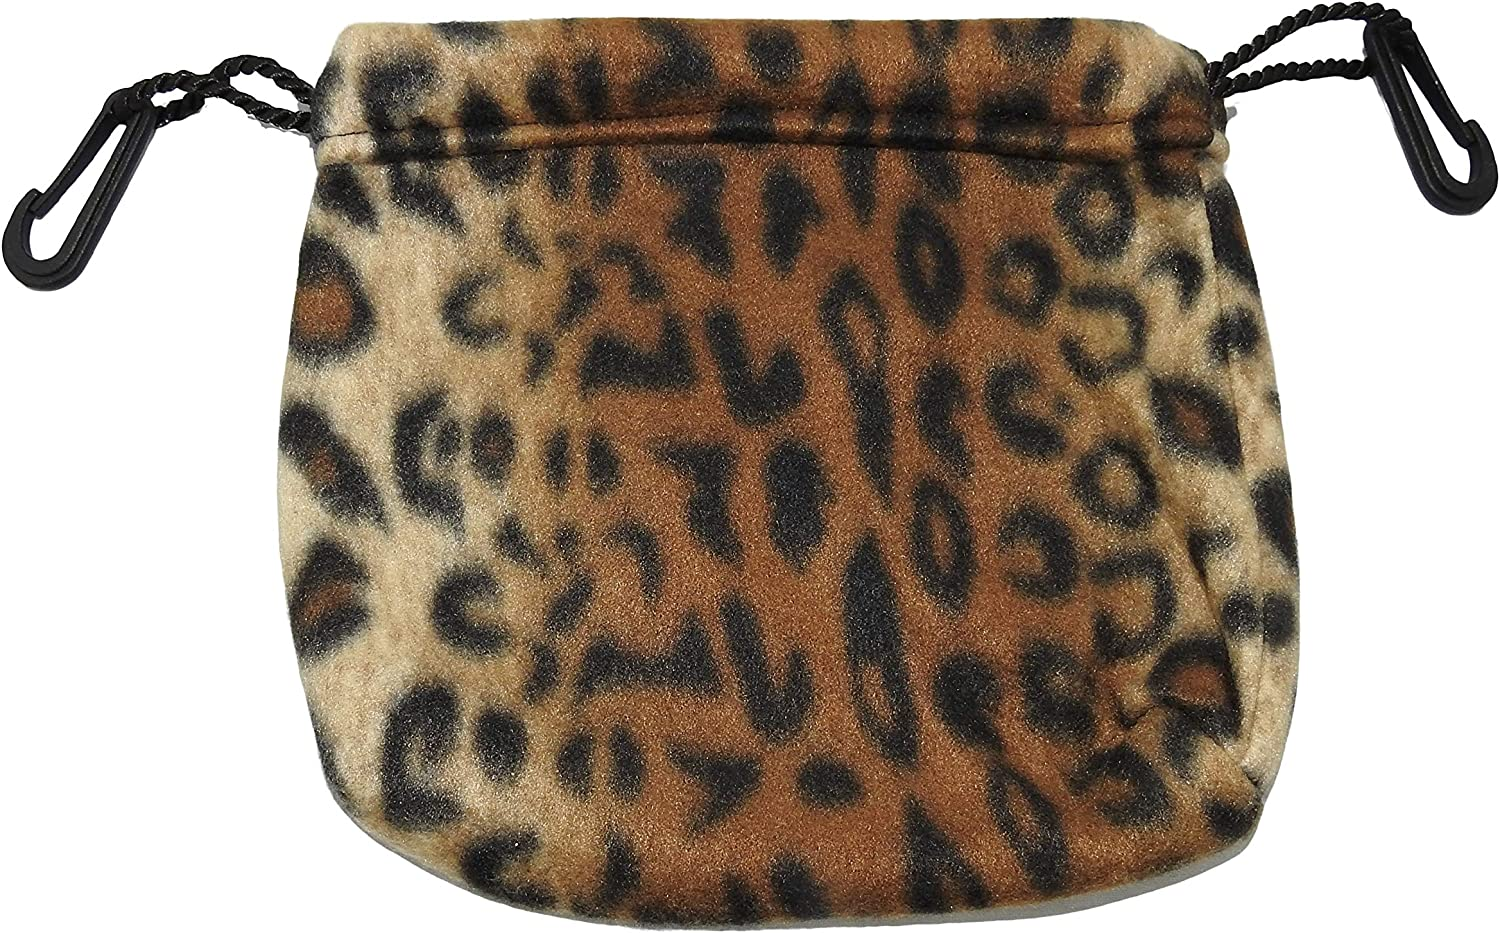 Sleeping Pouch for Sugar Gliders and Other Small Pets